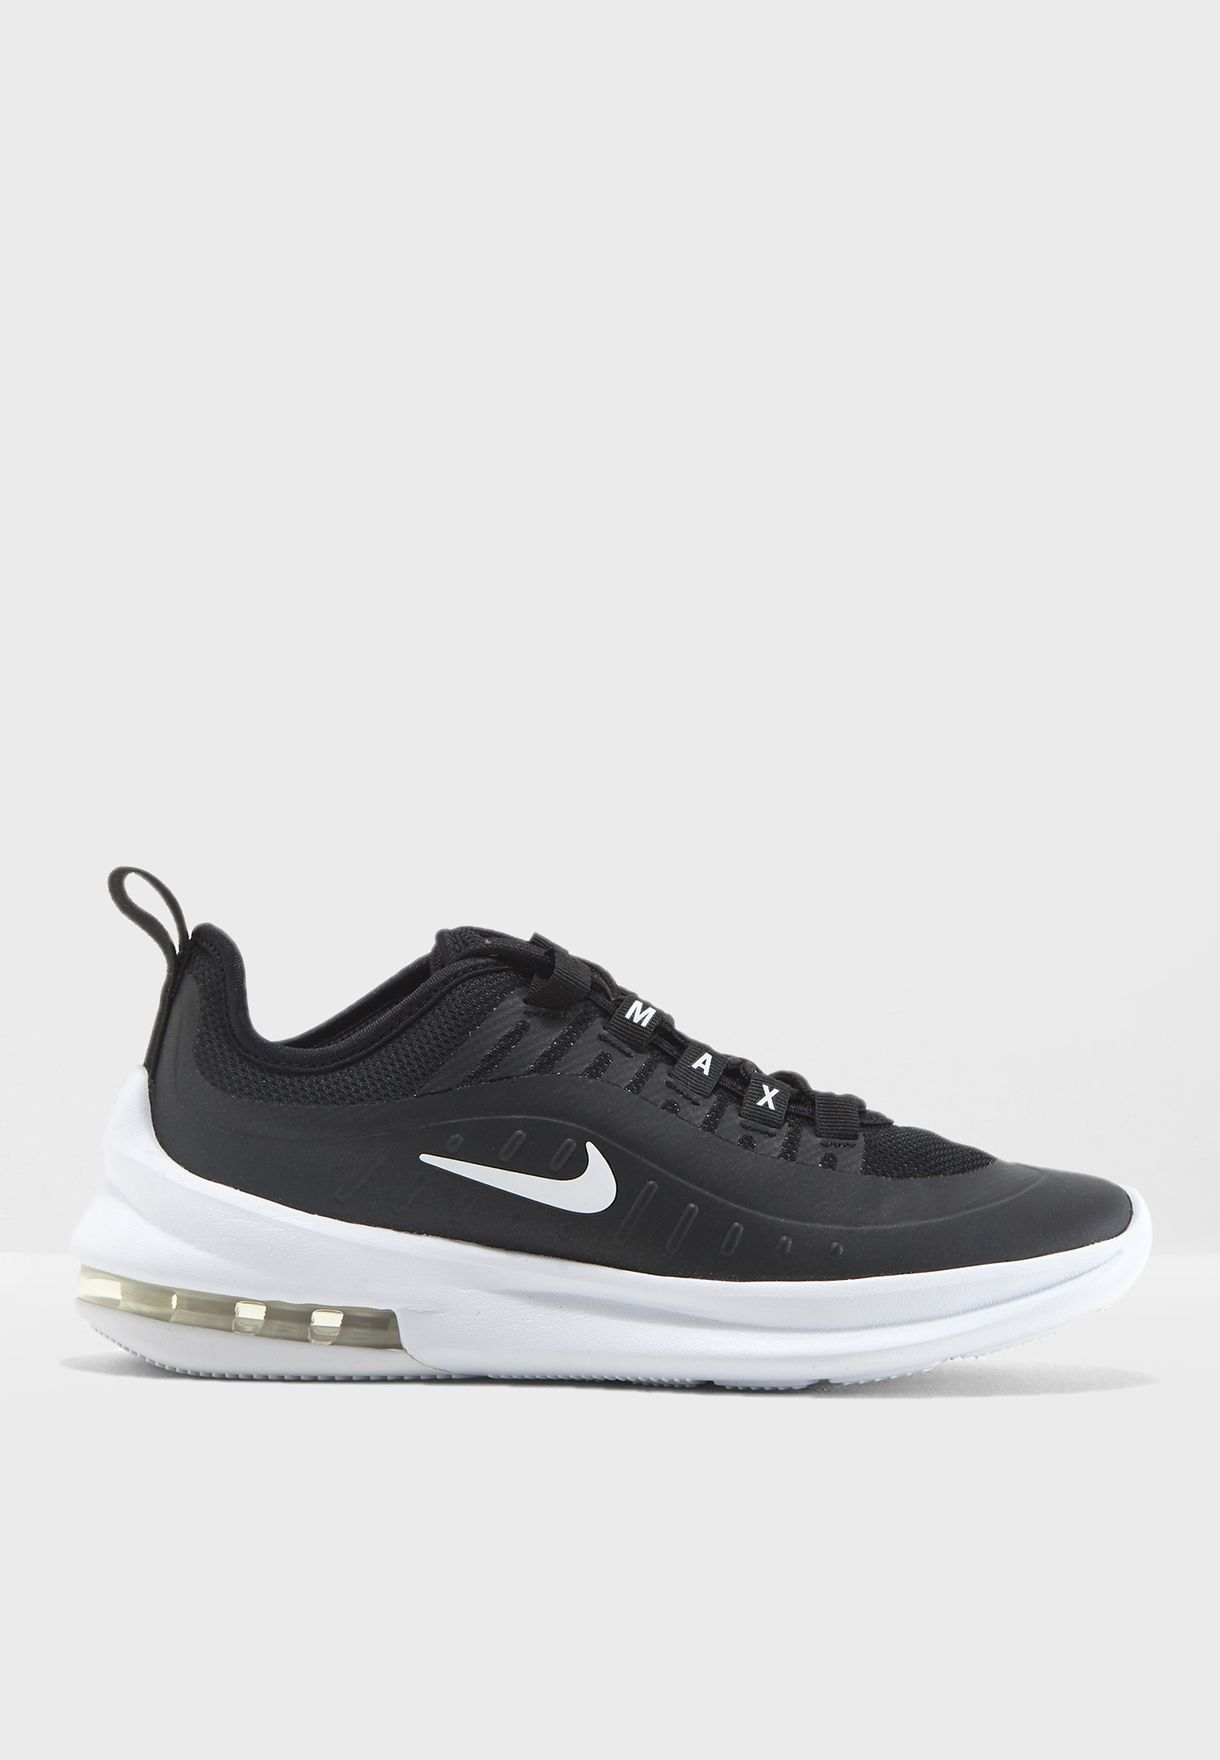 0921c4b5f53e7d Shop Nike black Youth Air Max Axis AH5222-001 for Kids in Globally ...